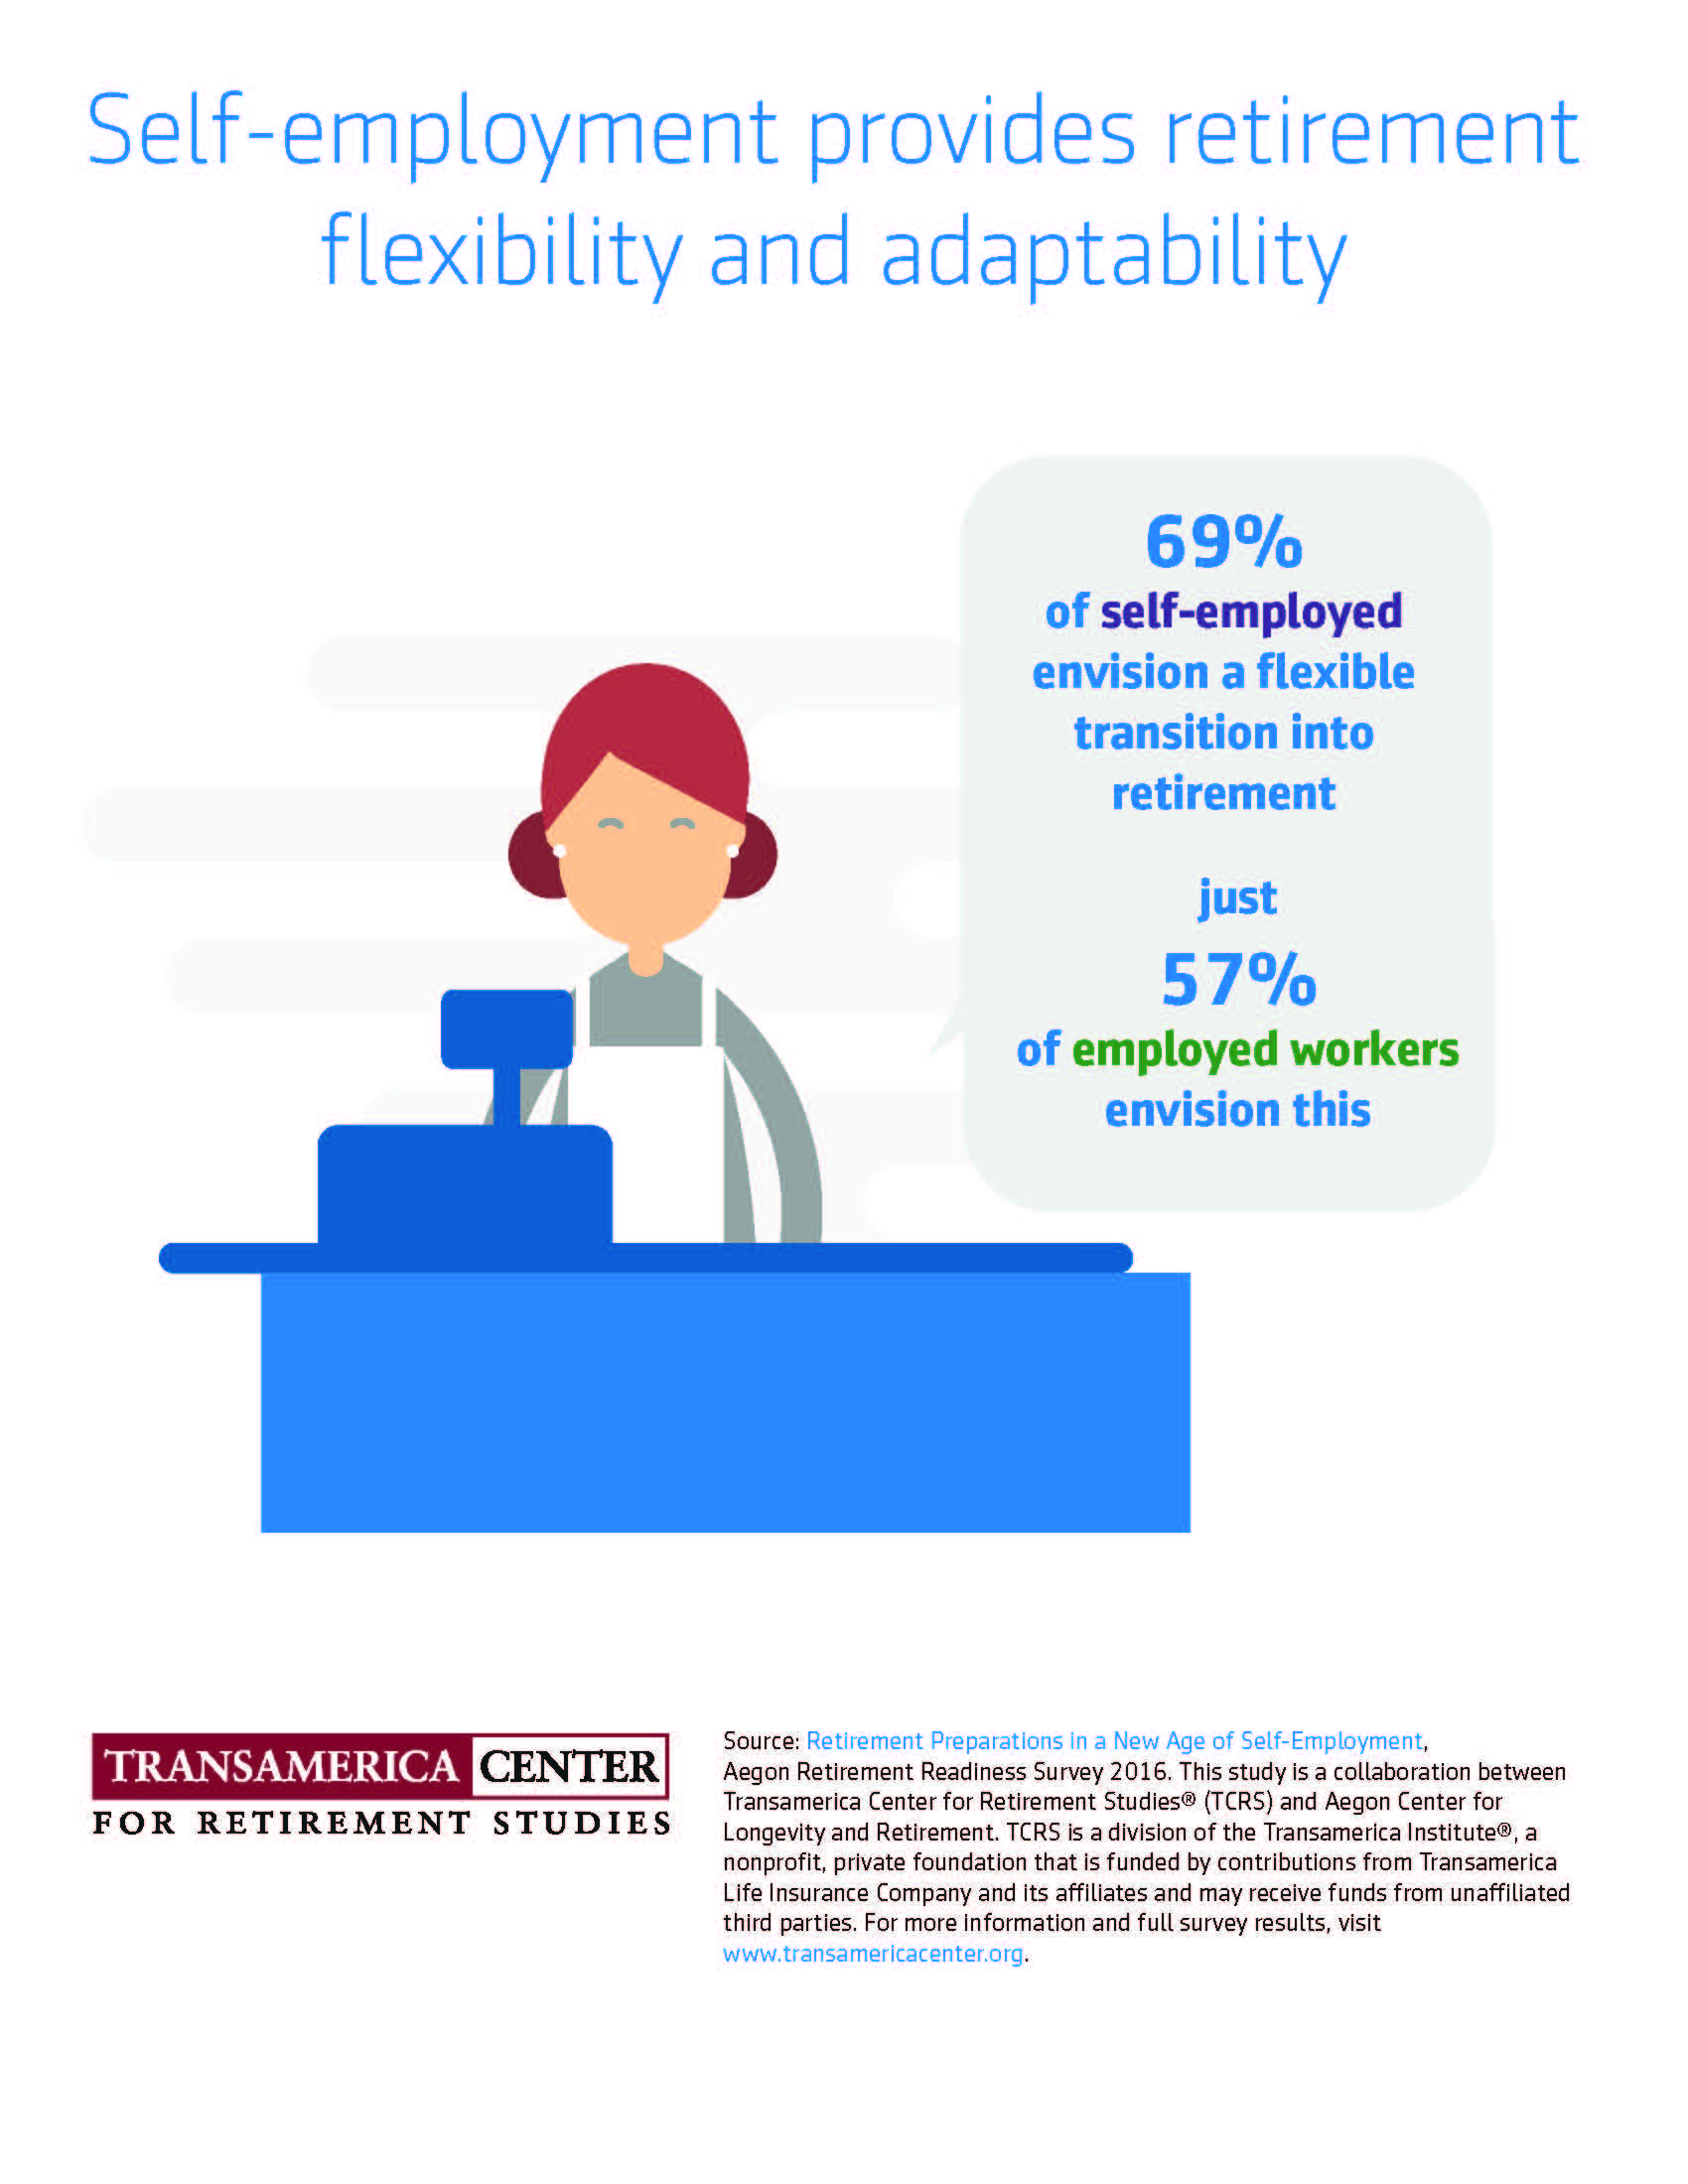 TCRS2017_I_SelfEmployed_Retirement_Flexibility